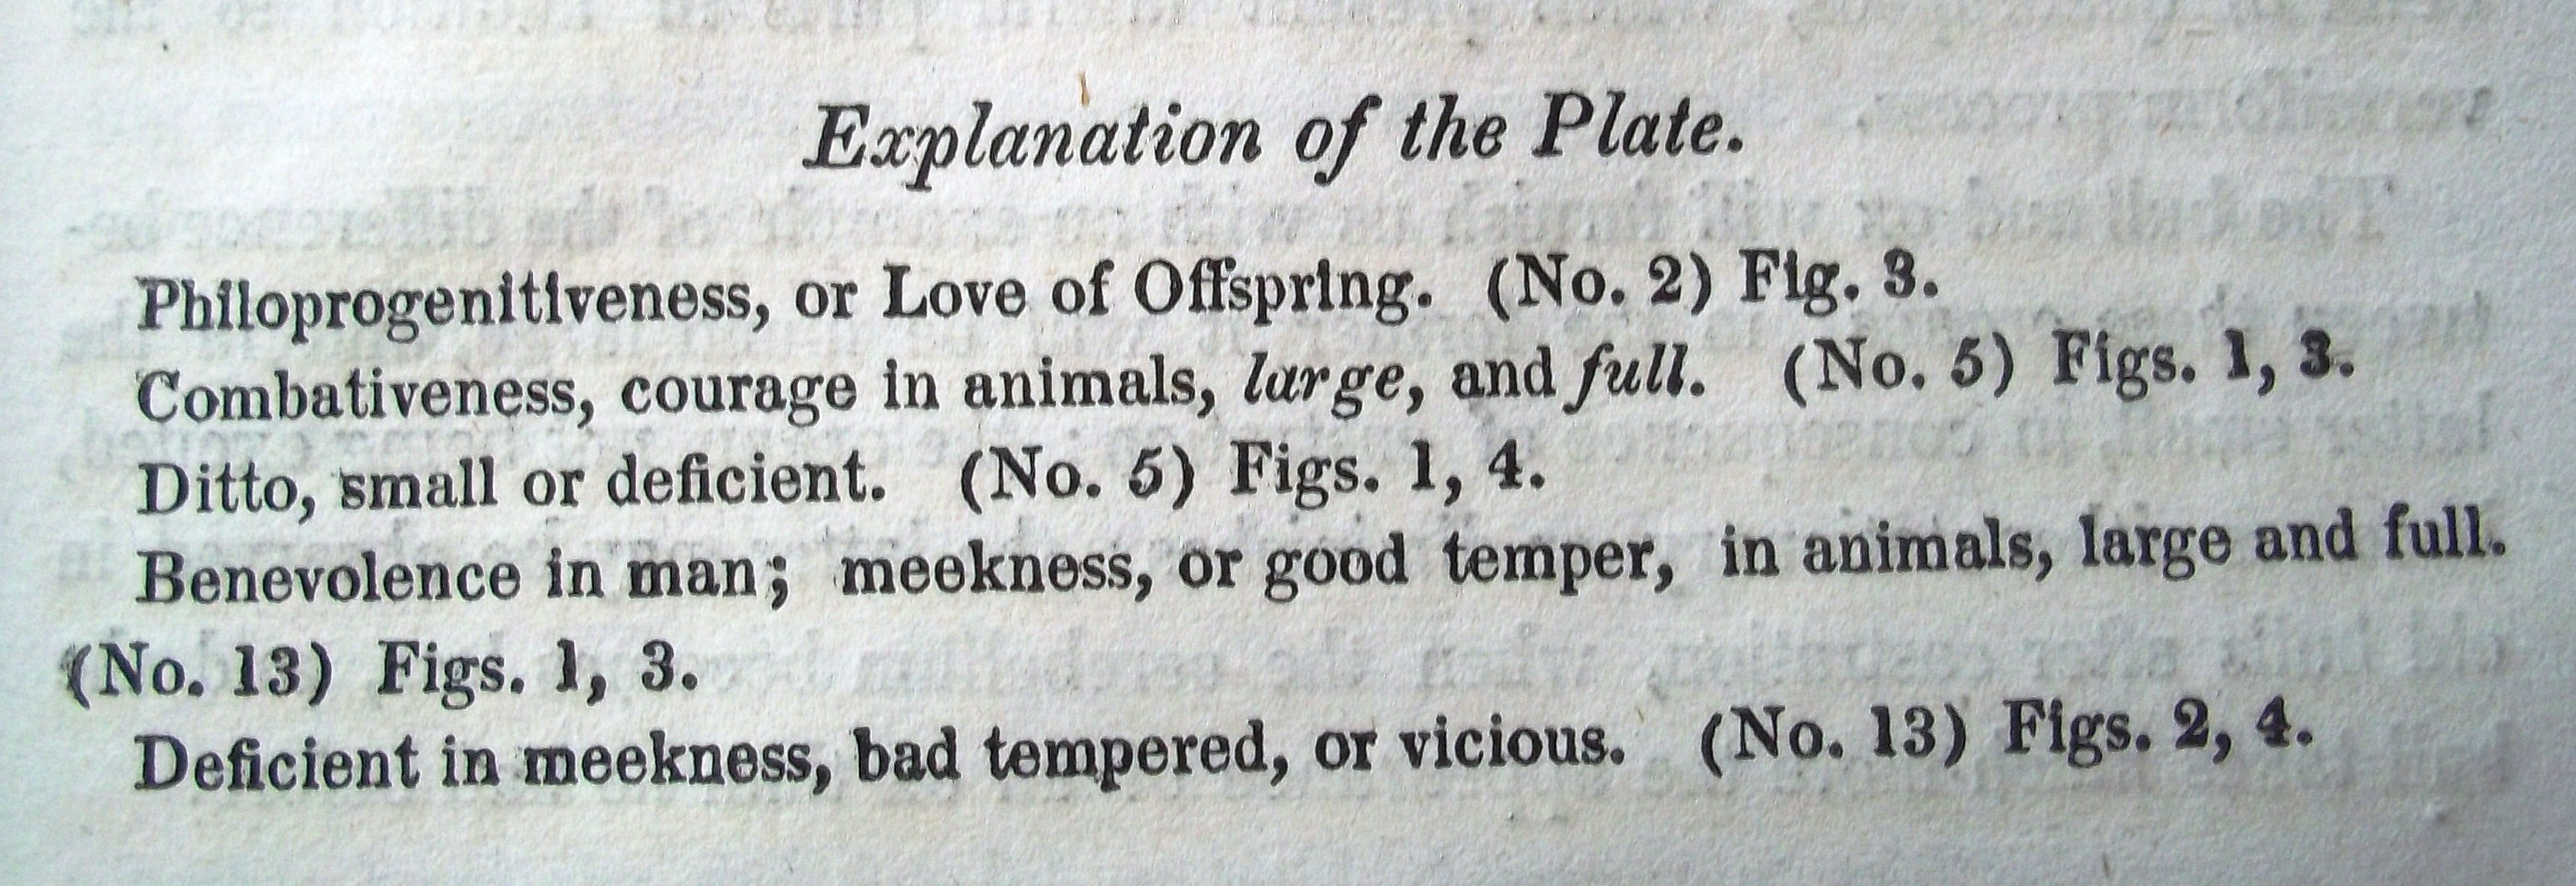 Explanation of plate